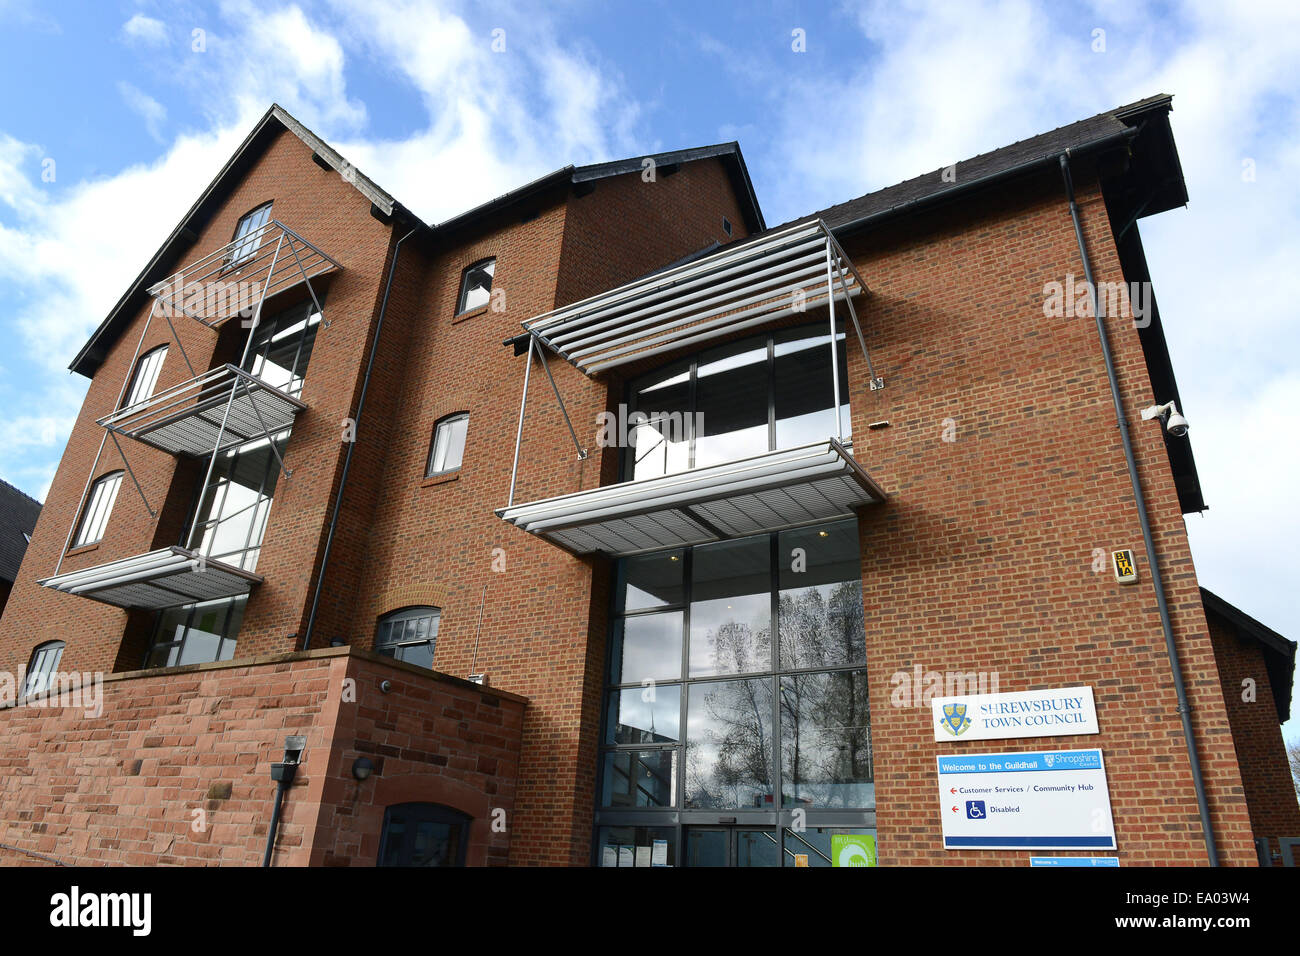 The Guildhall Shrewsbury Town Council offices in Frankwell Quay, Shrewsbury - Stock Image